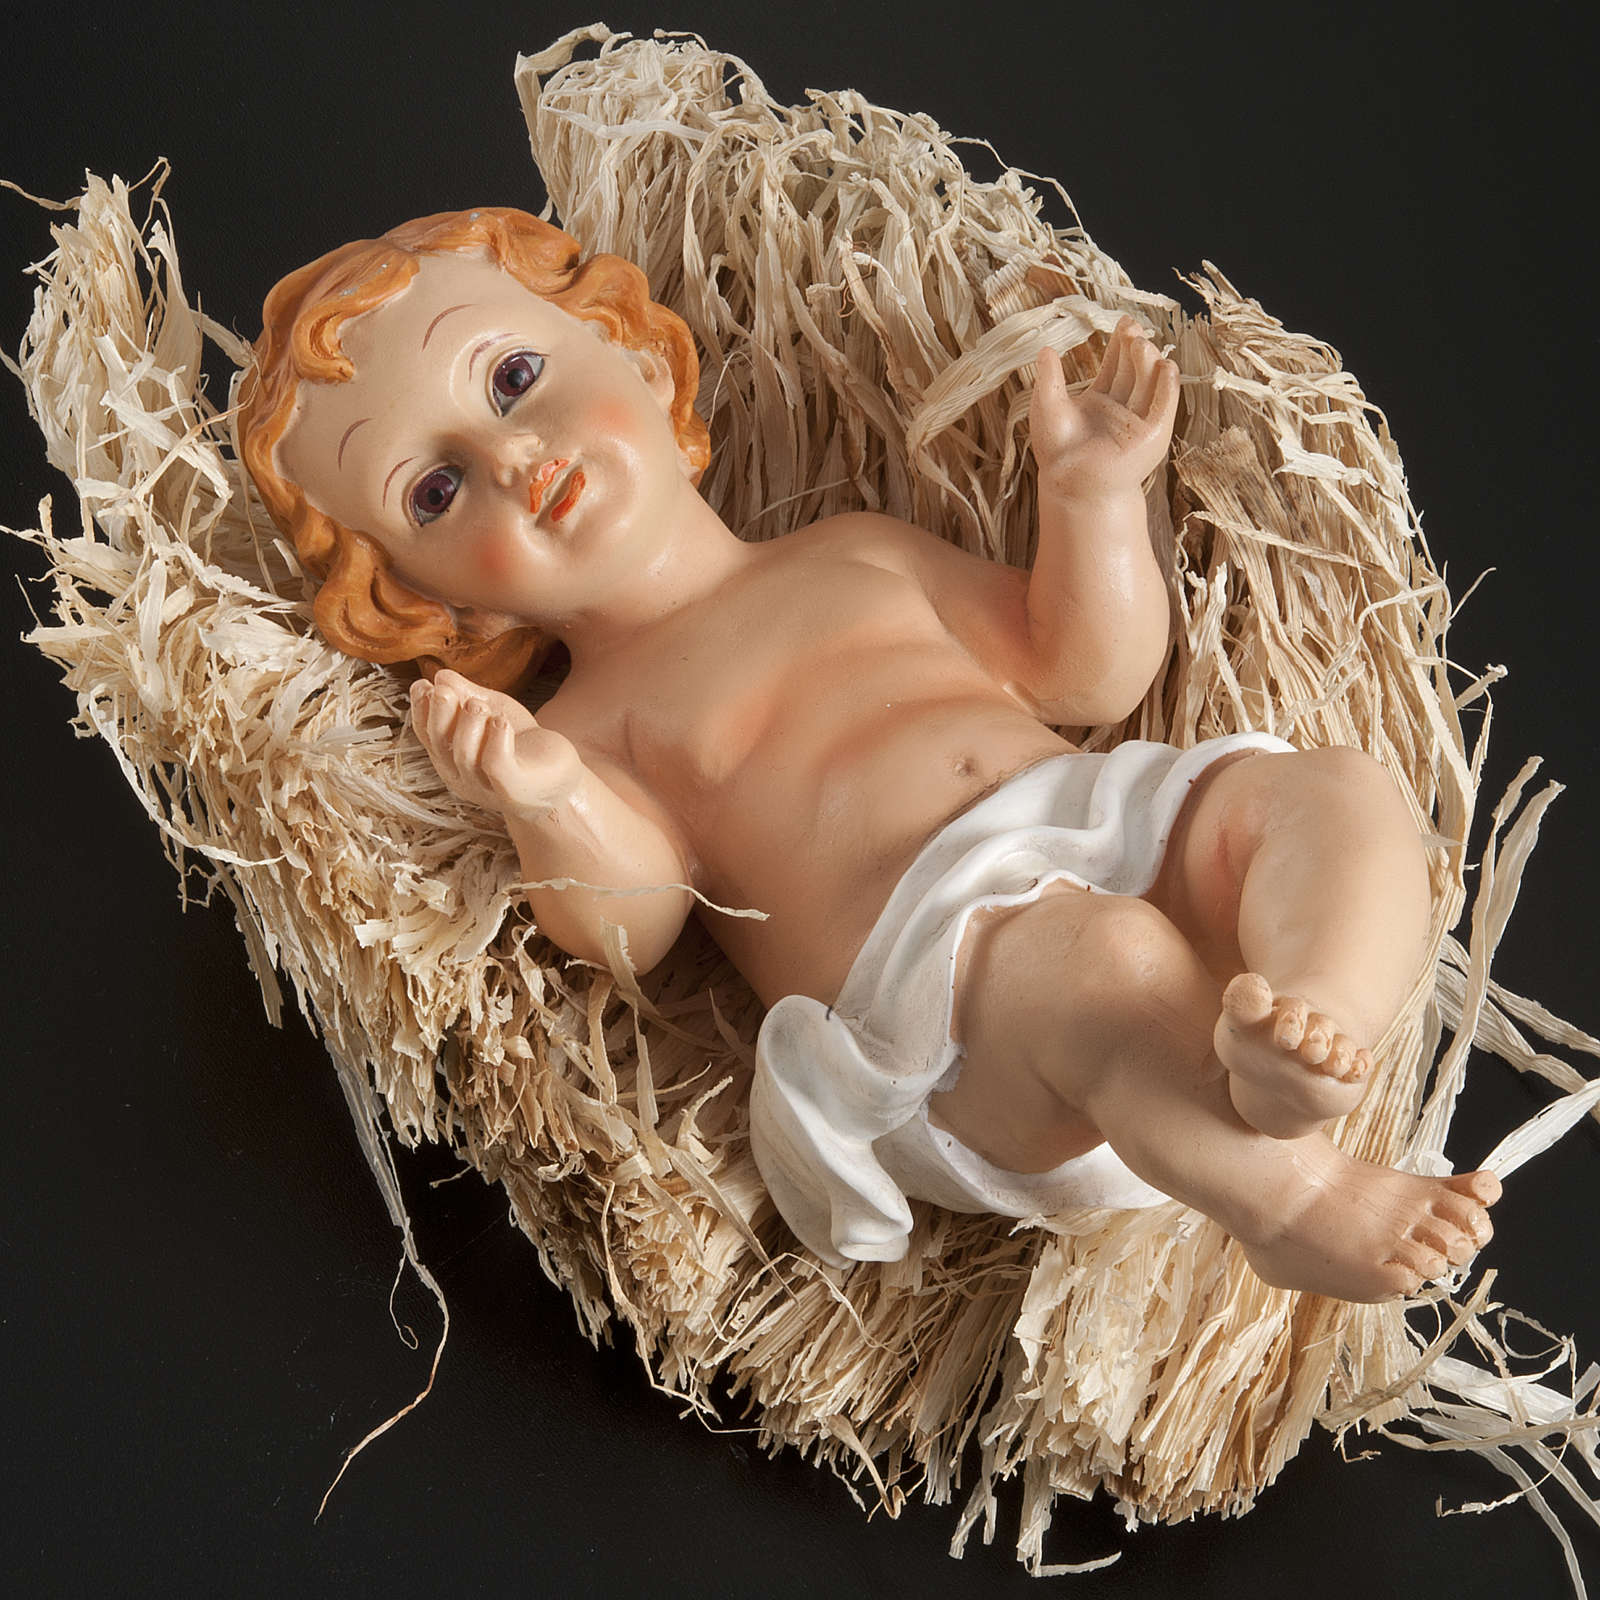 Baby Jesus figurine in pvc laying on straw, various sizes 3